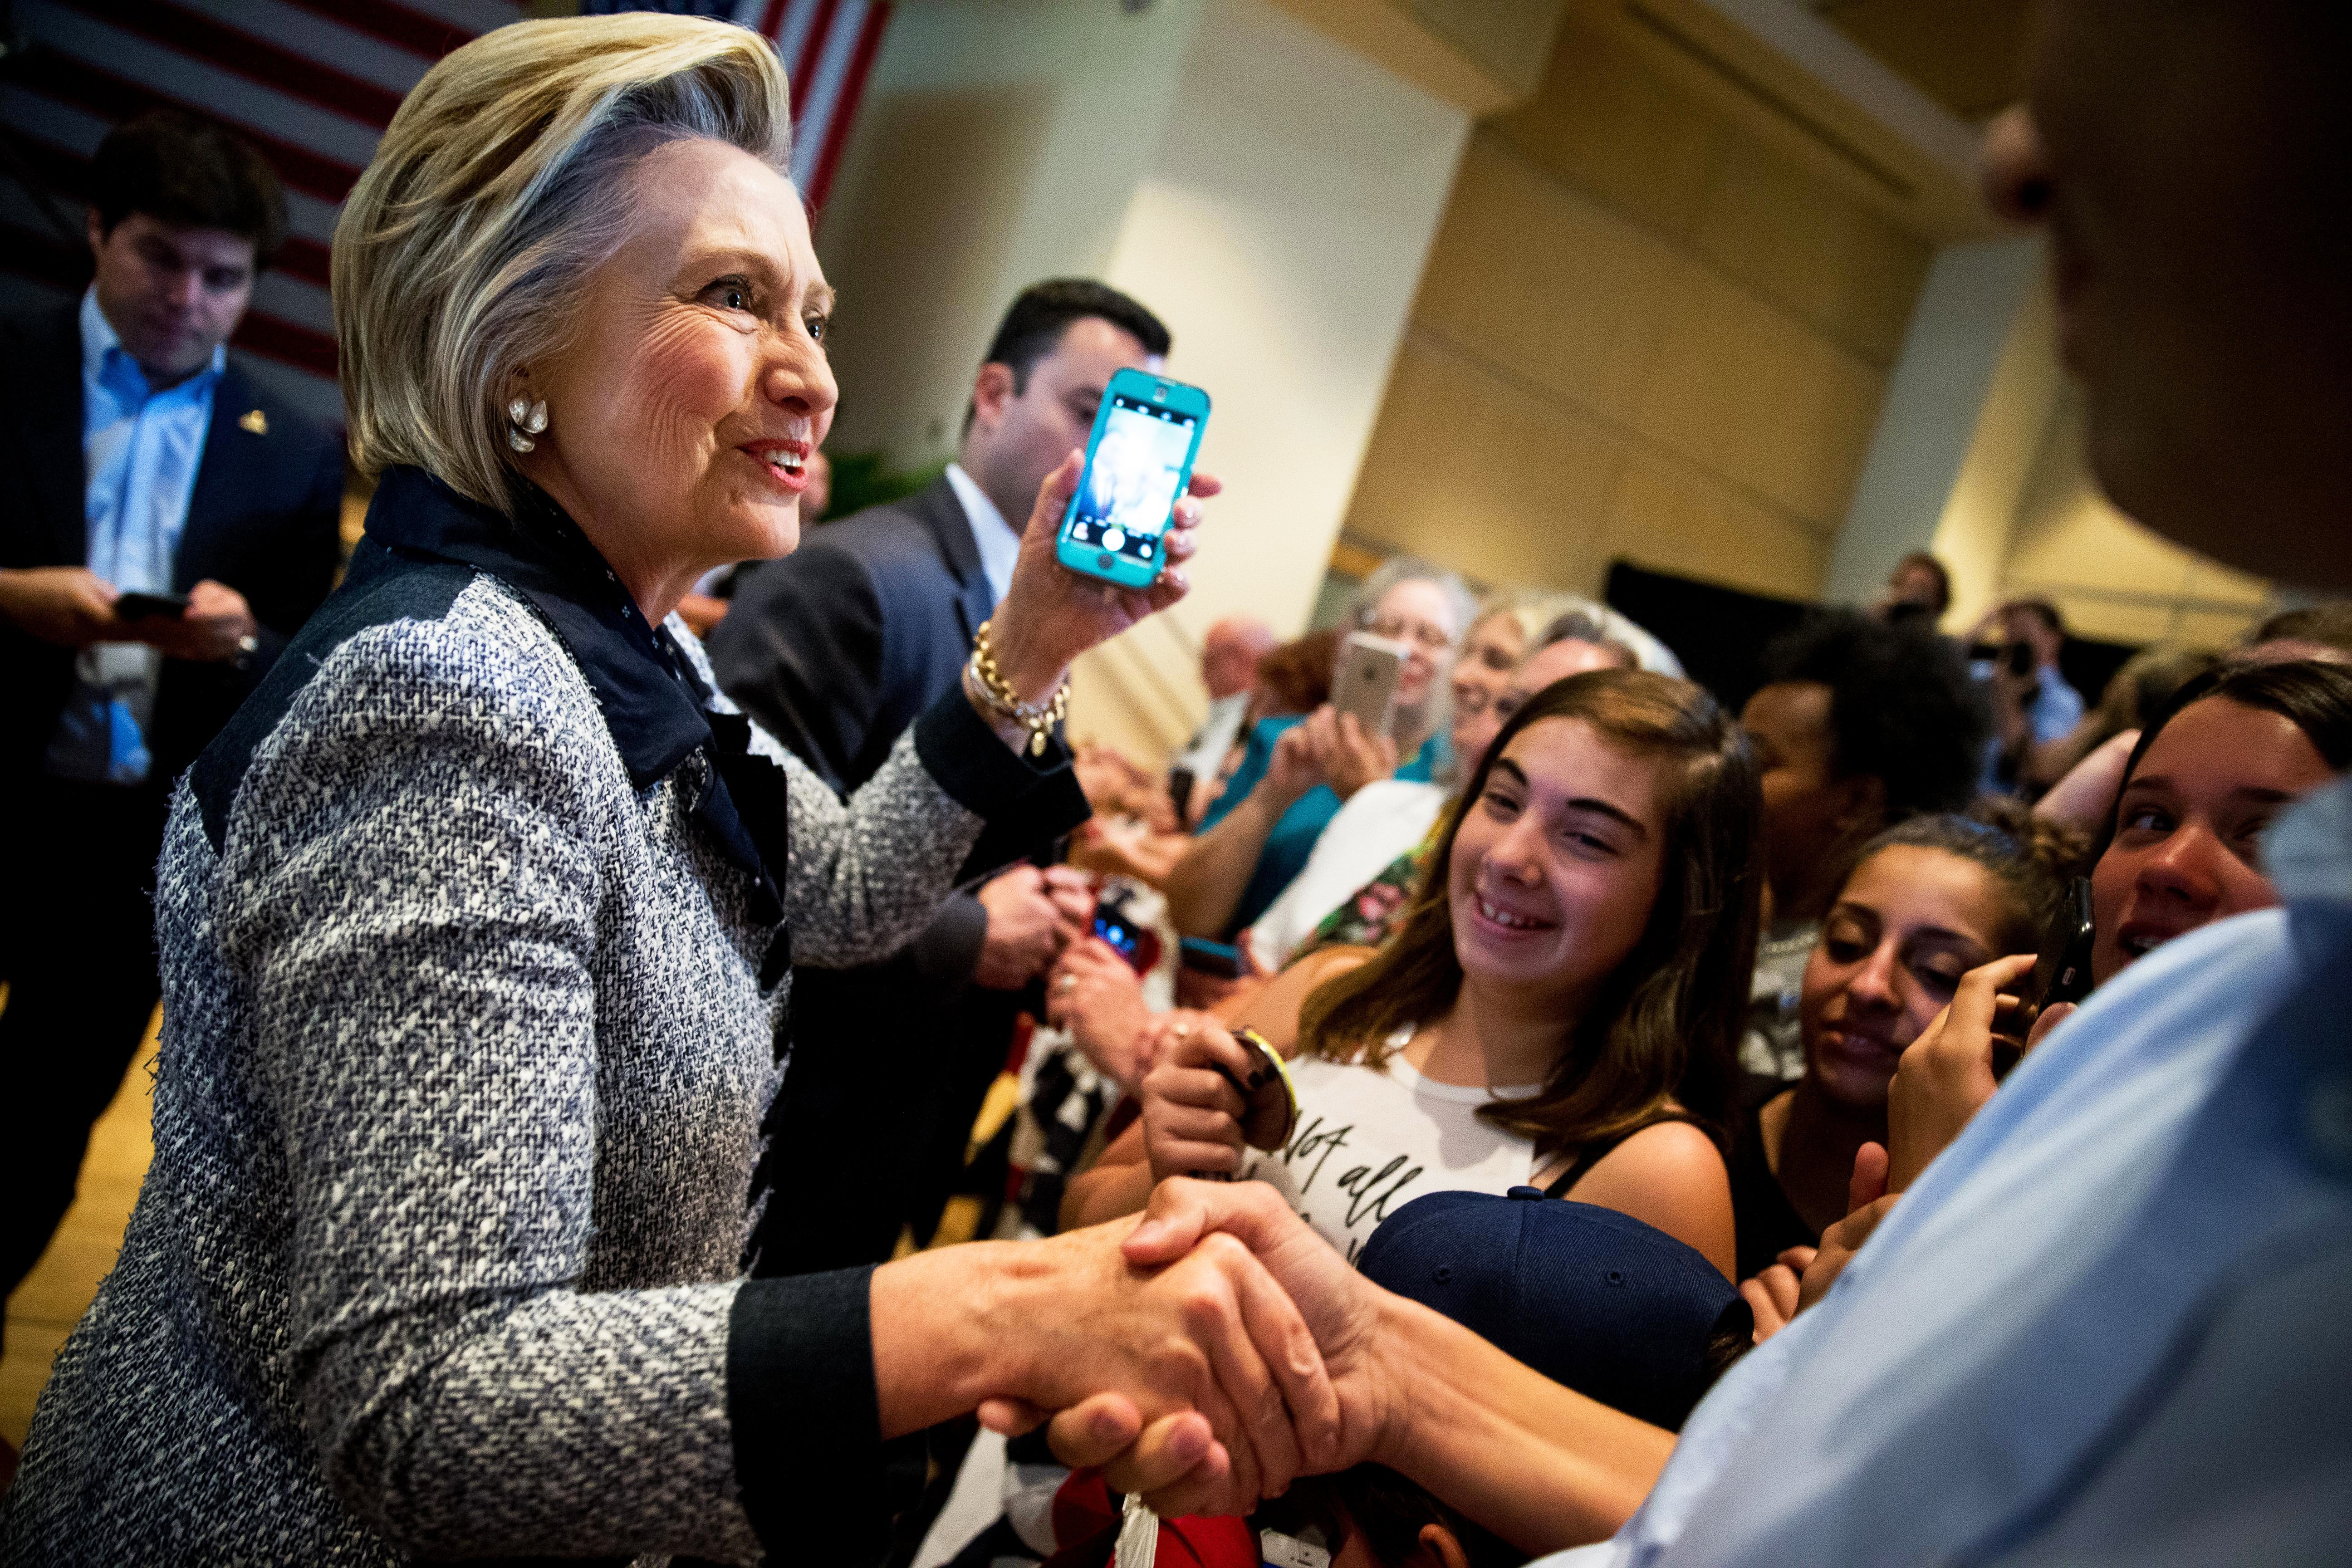 Hillary Clinton greets members of the audience after speaking at a rally at the International Brotherhood of Electrical Workers Circuit Center in Pittsburgh on June 14, 2016.